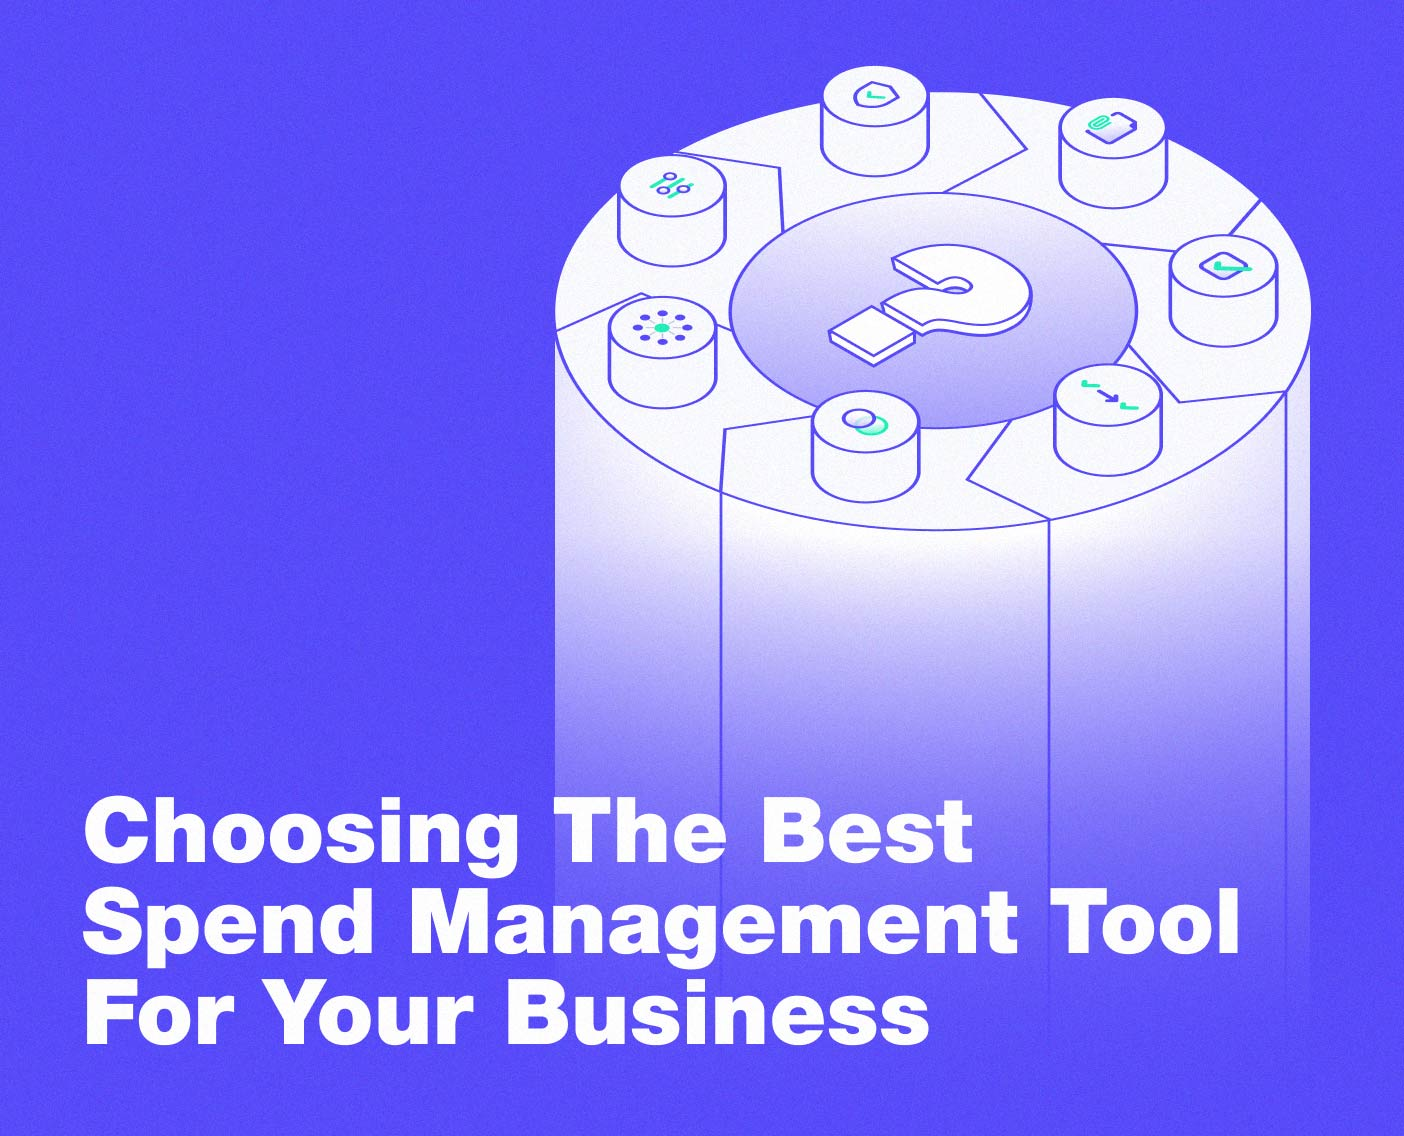 spend management tool